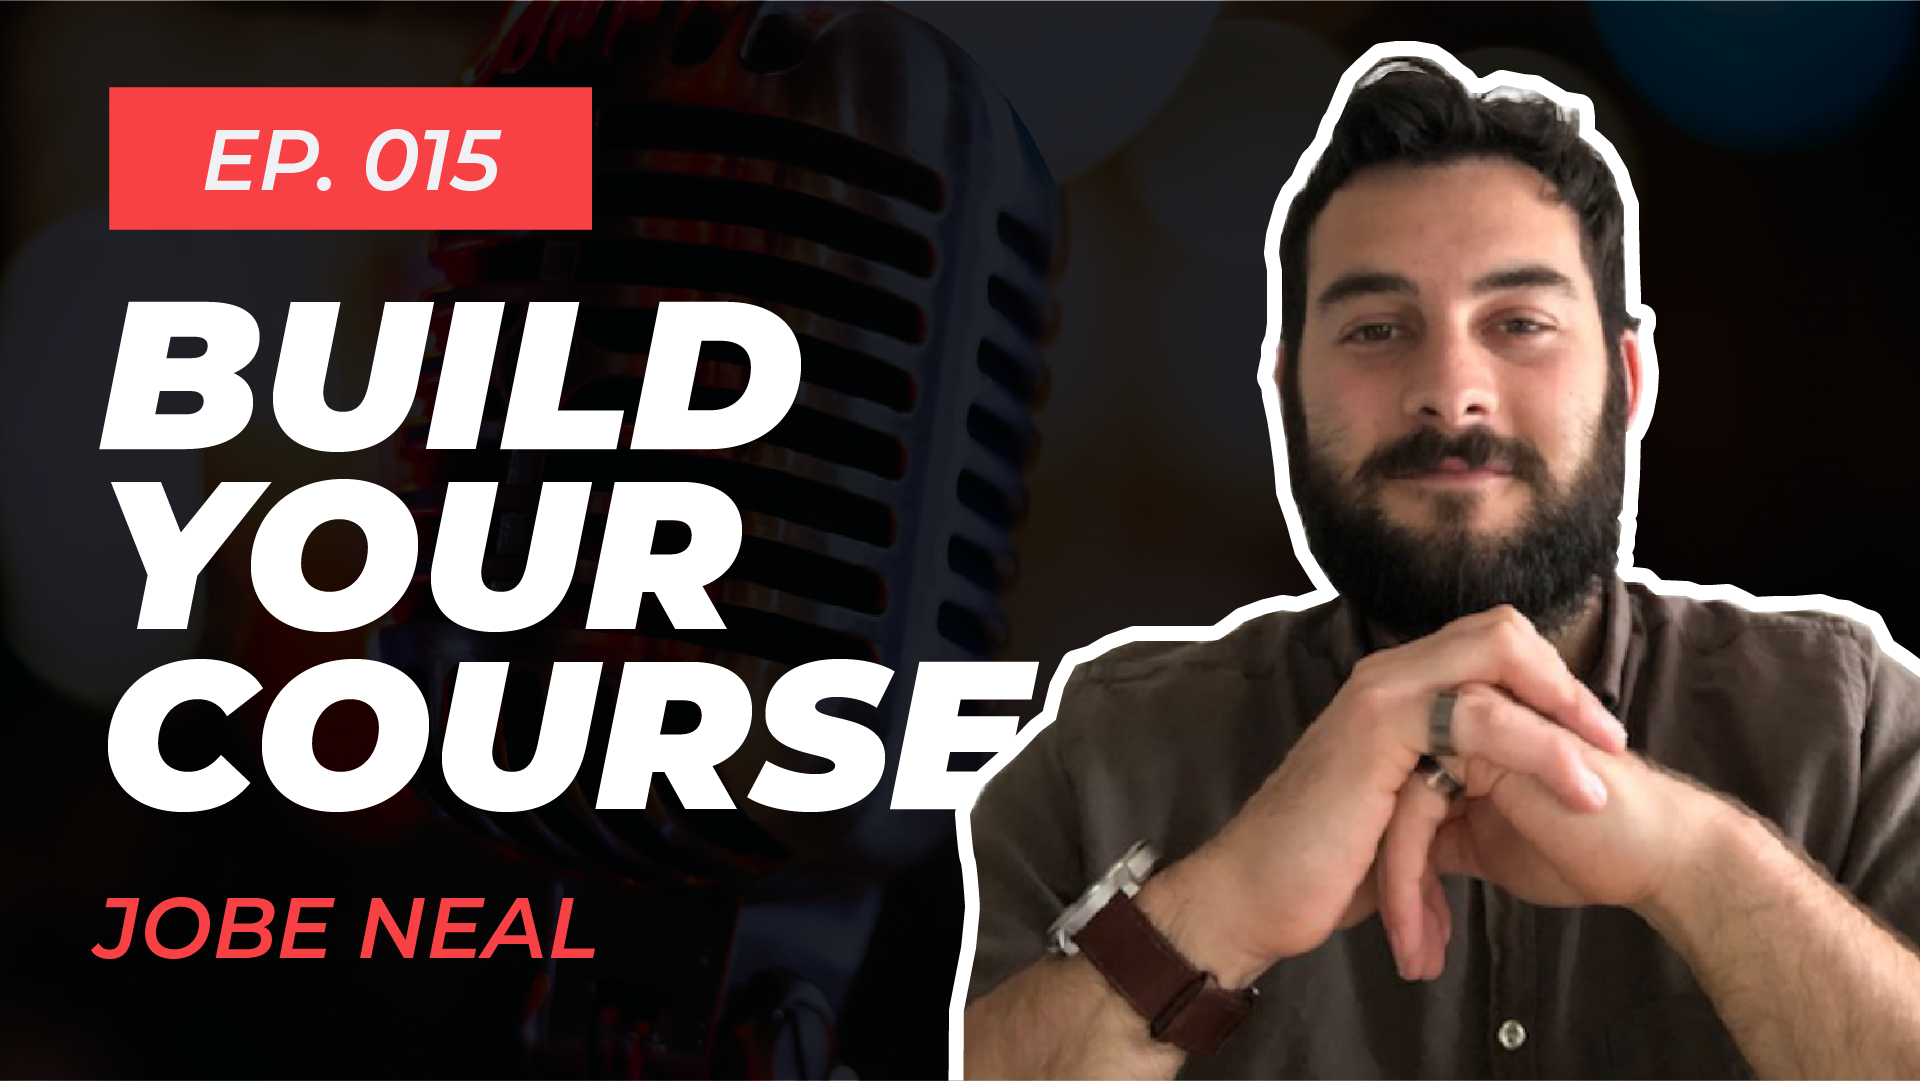 EP015 | Build Your Course with Jobe Neal